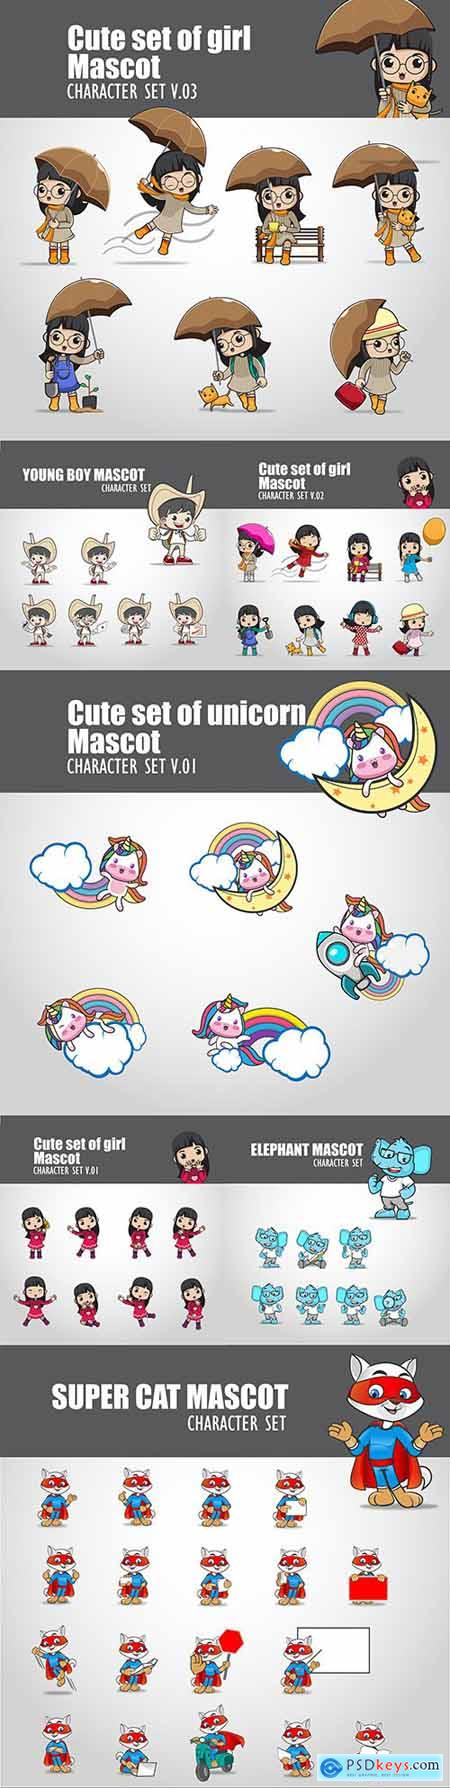 Cute set of girl mascots and animal illustrations